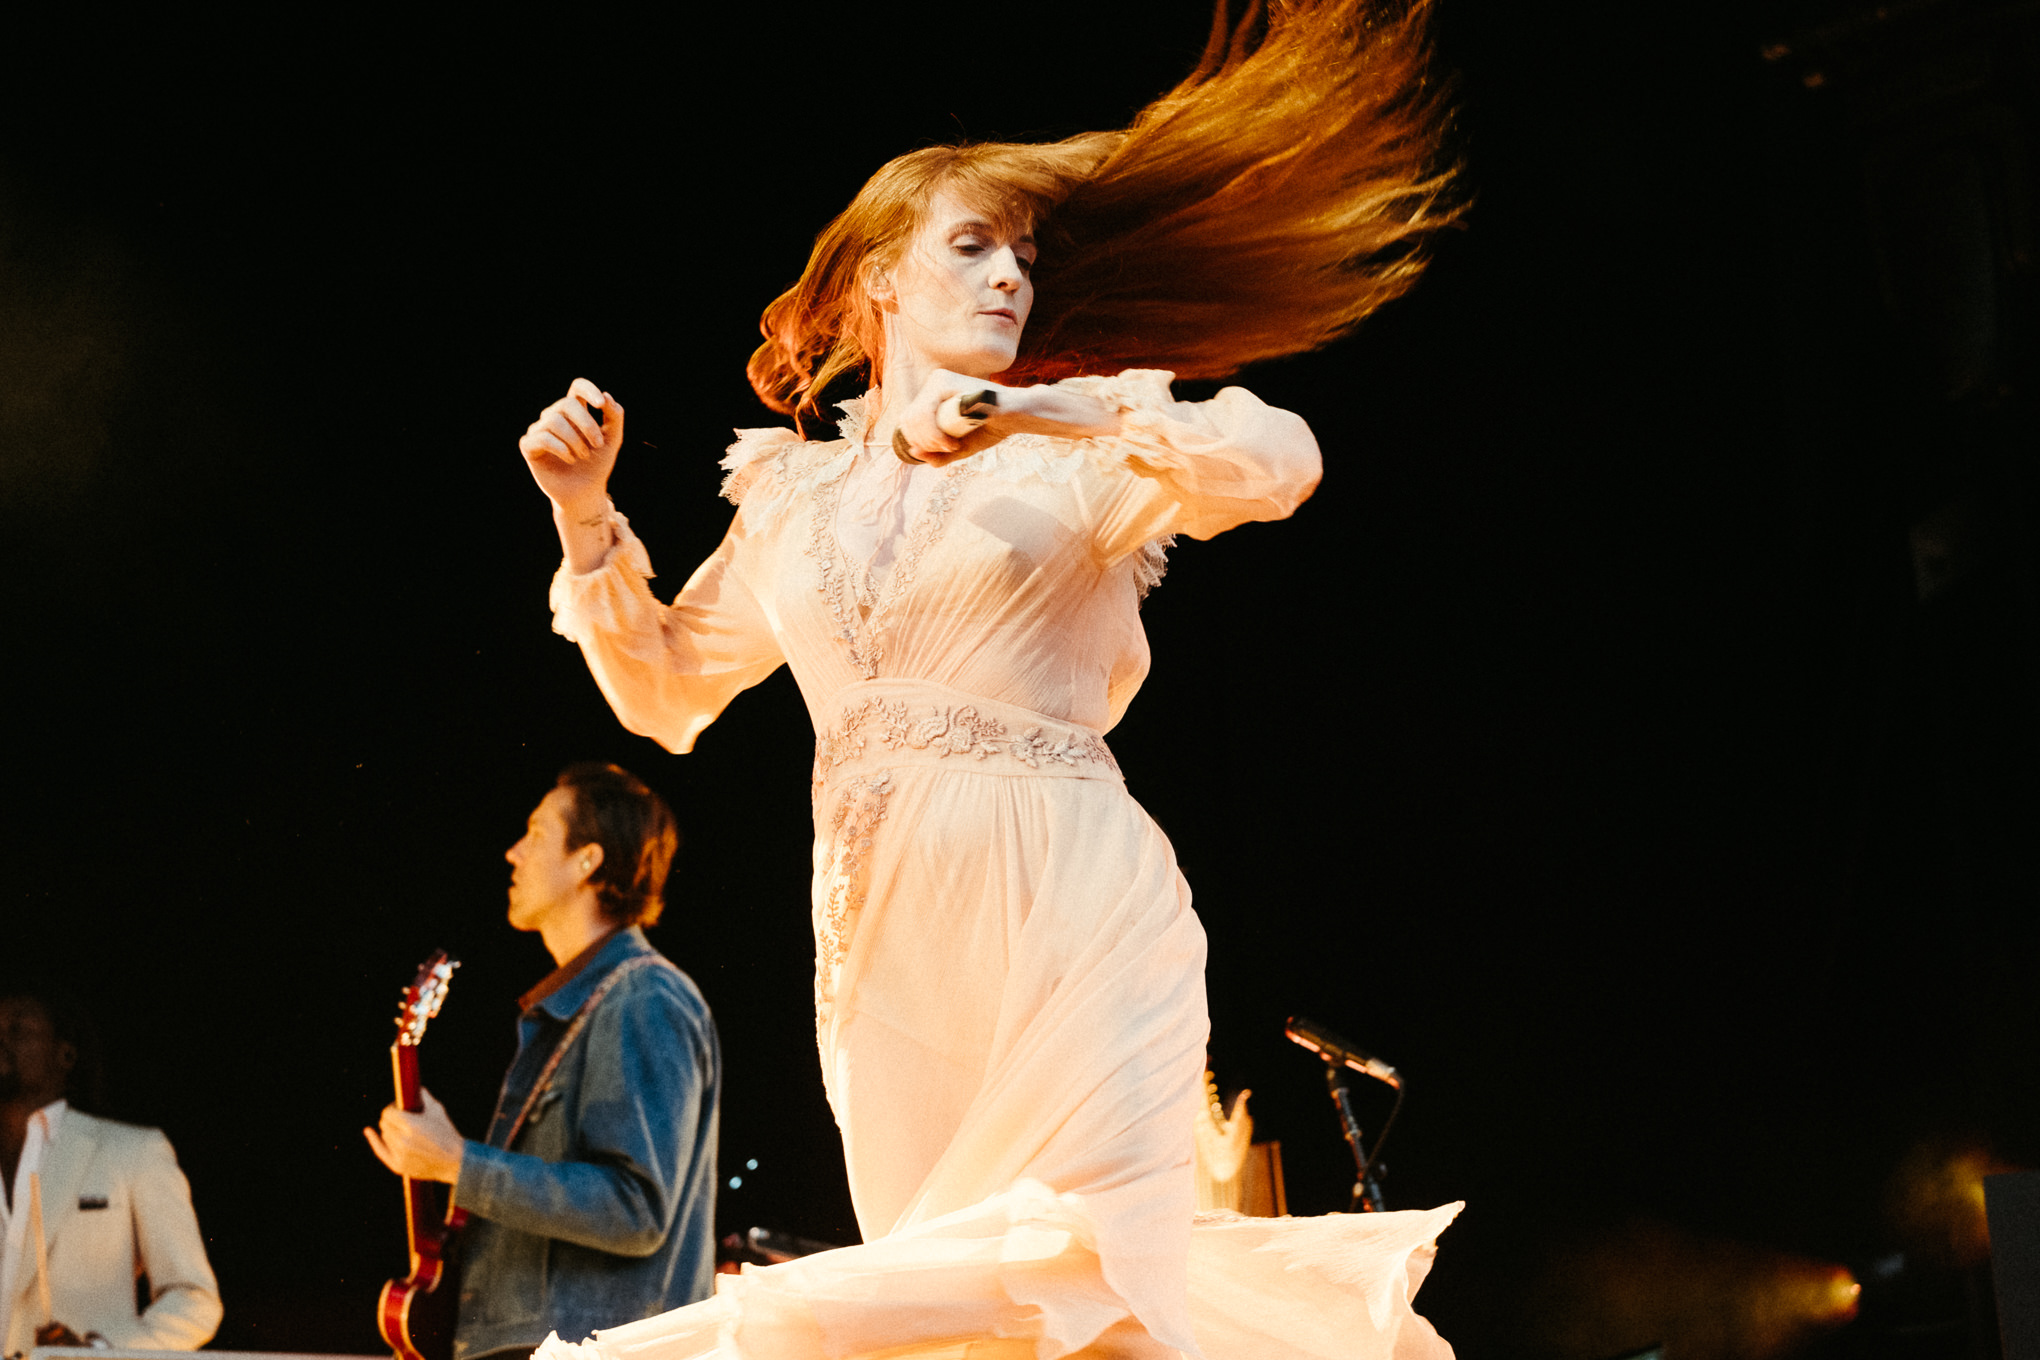 20190808_Florence And The Machine_007.jpg